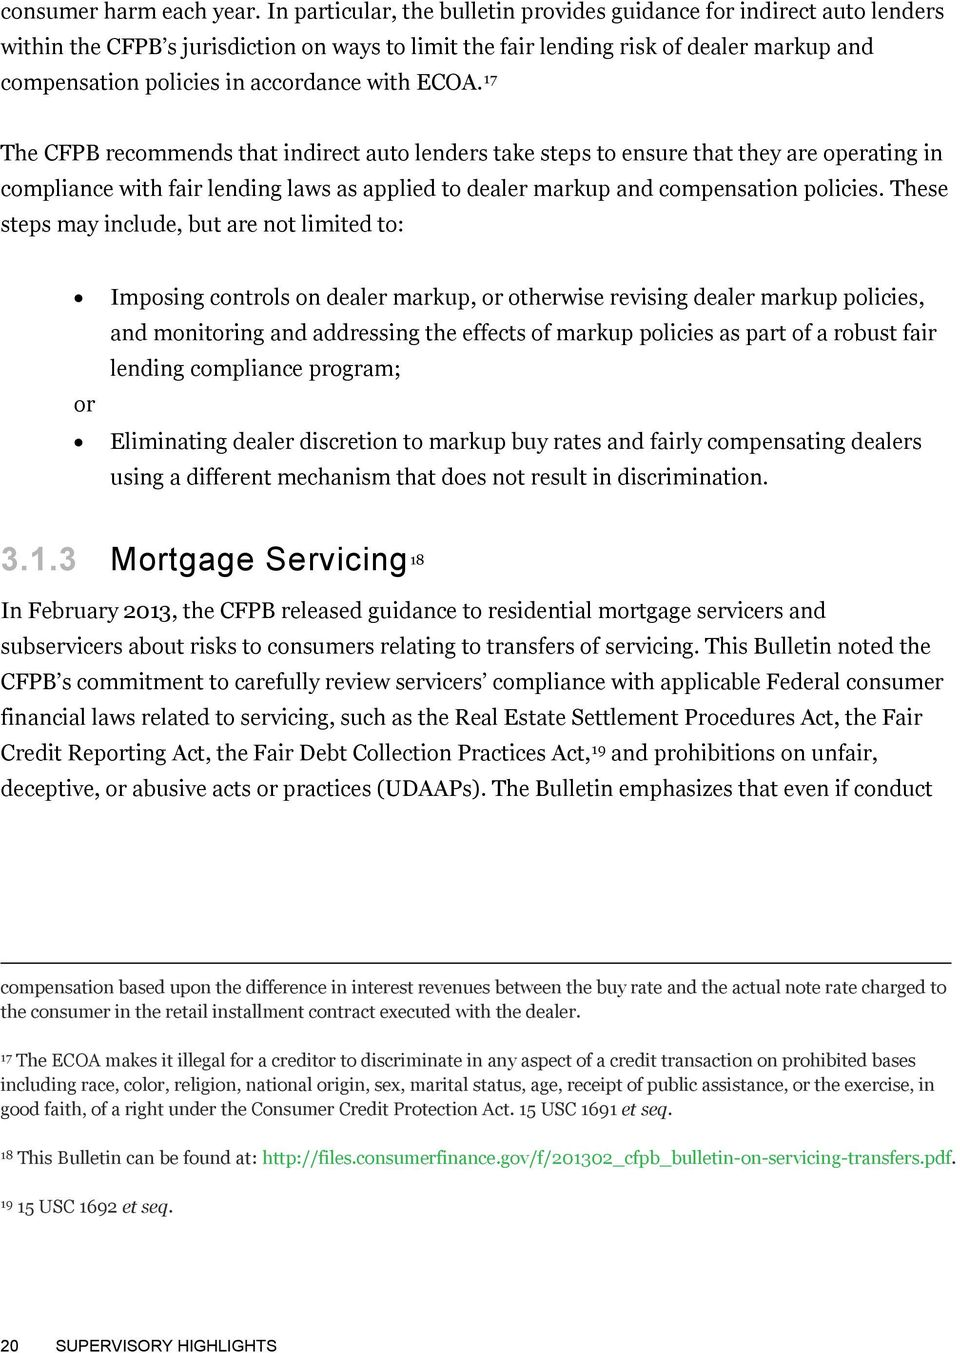 with ECOA.16F17 The CFPB recommends that indirect auto lenders take steps to ensure that they are operating in compliance with fair lending laws as applied to dealer markup and compensation policies.